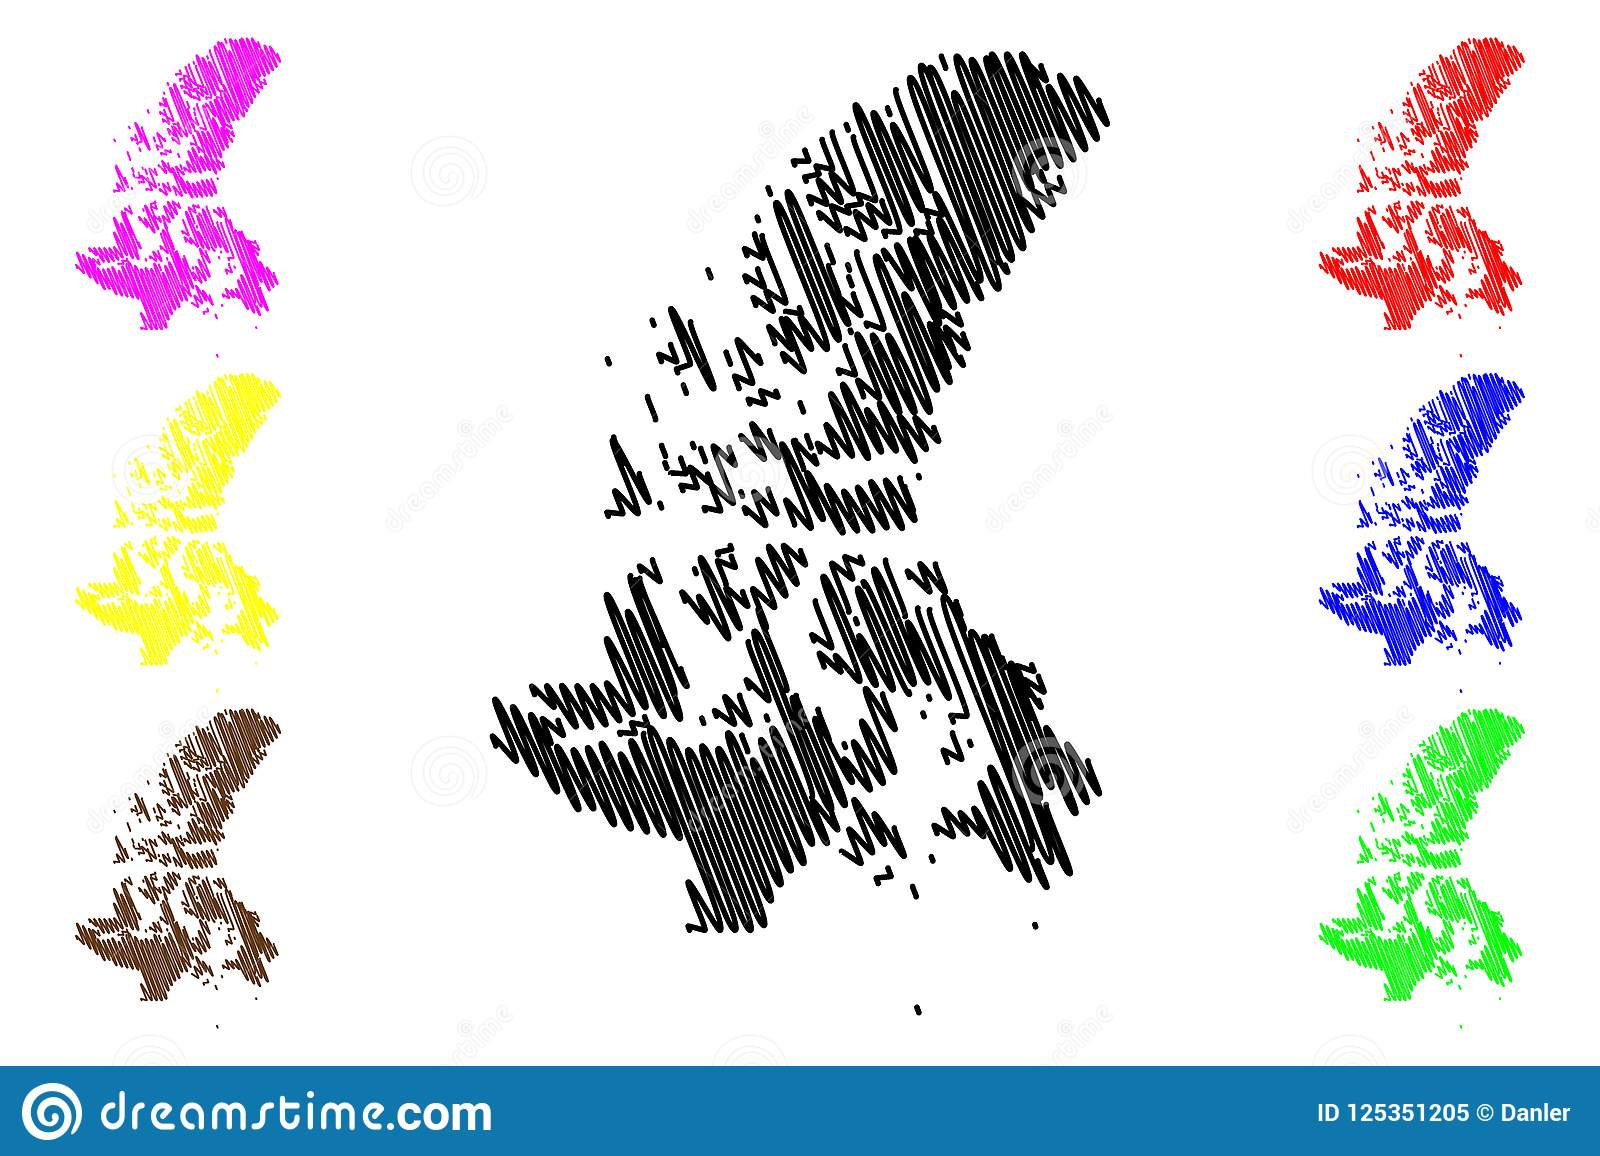 Provinces And Territories Of Canada Map.Nunavut Canada Map Vector Stock Vector Illustration Of National